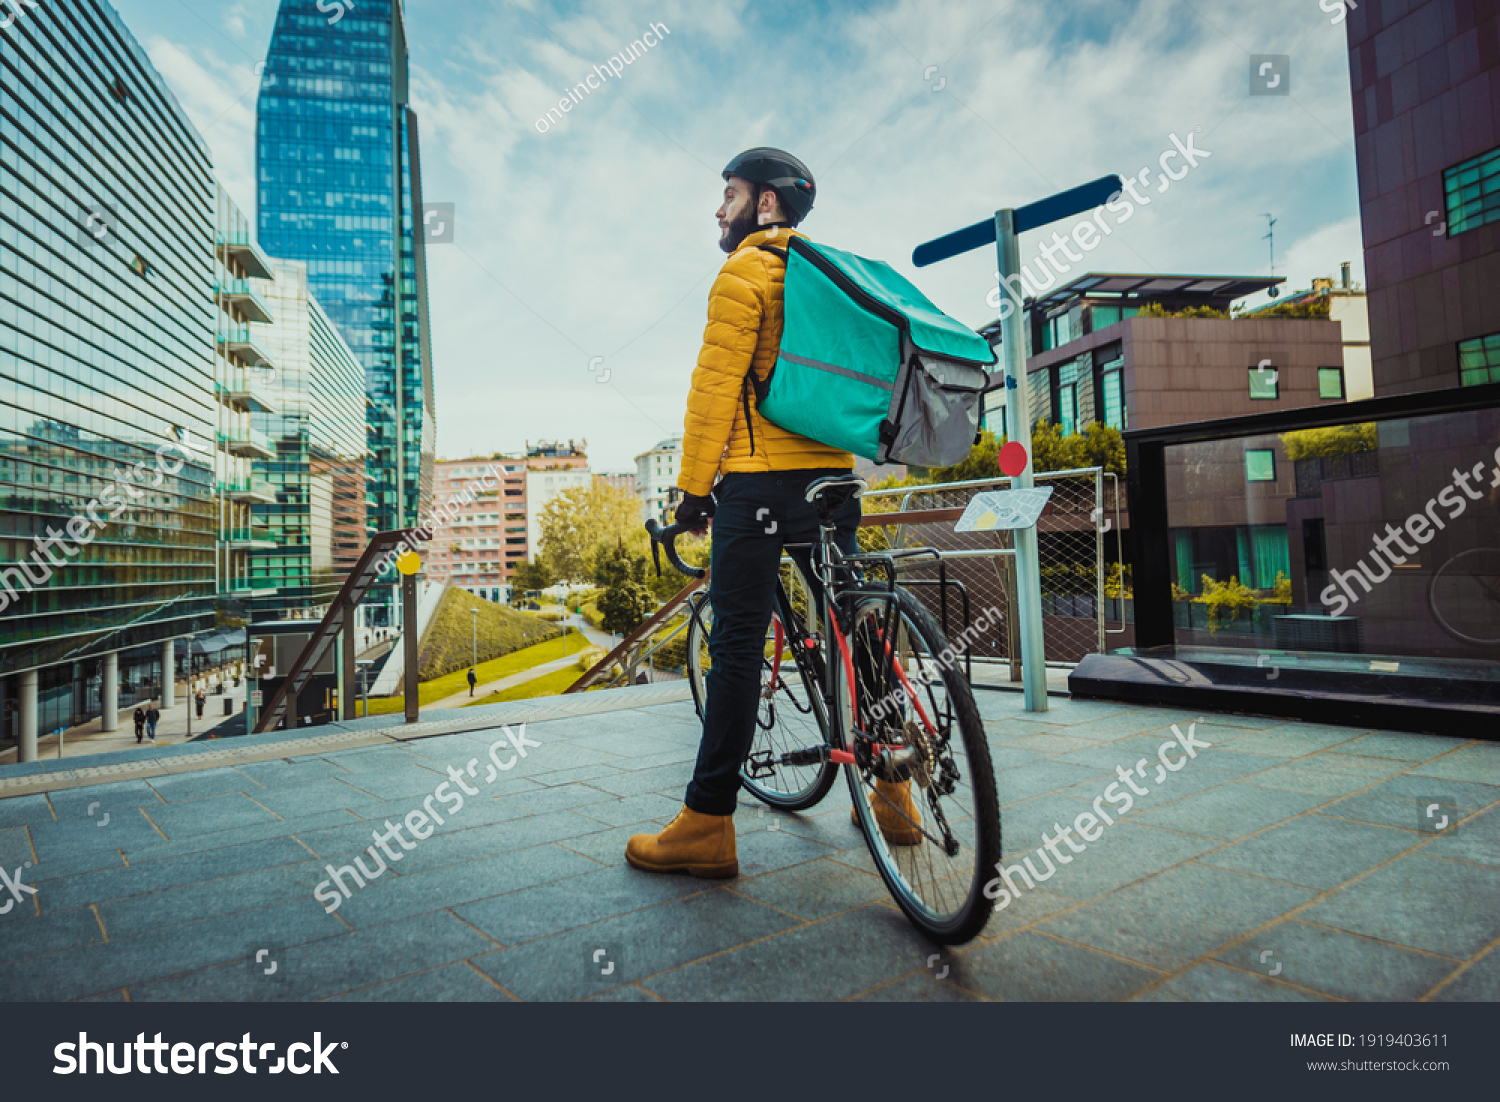 Food delivery service, rider delivering food to clients with bicycle - Concepts about transportation, food delivery and technology #1919403611